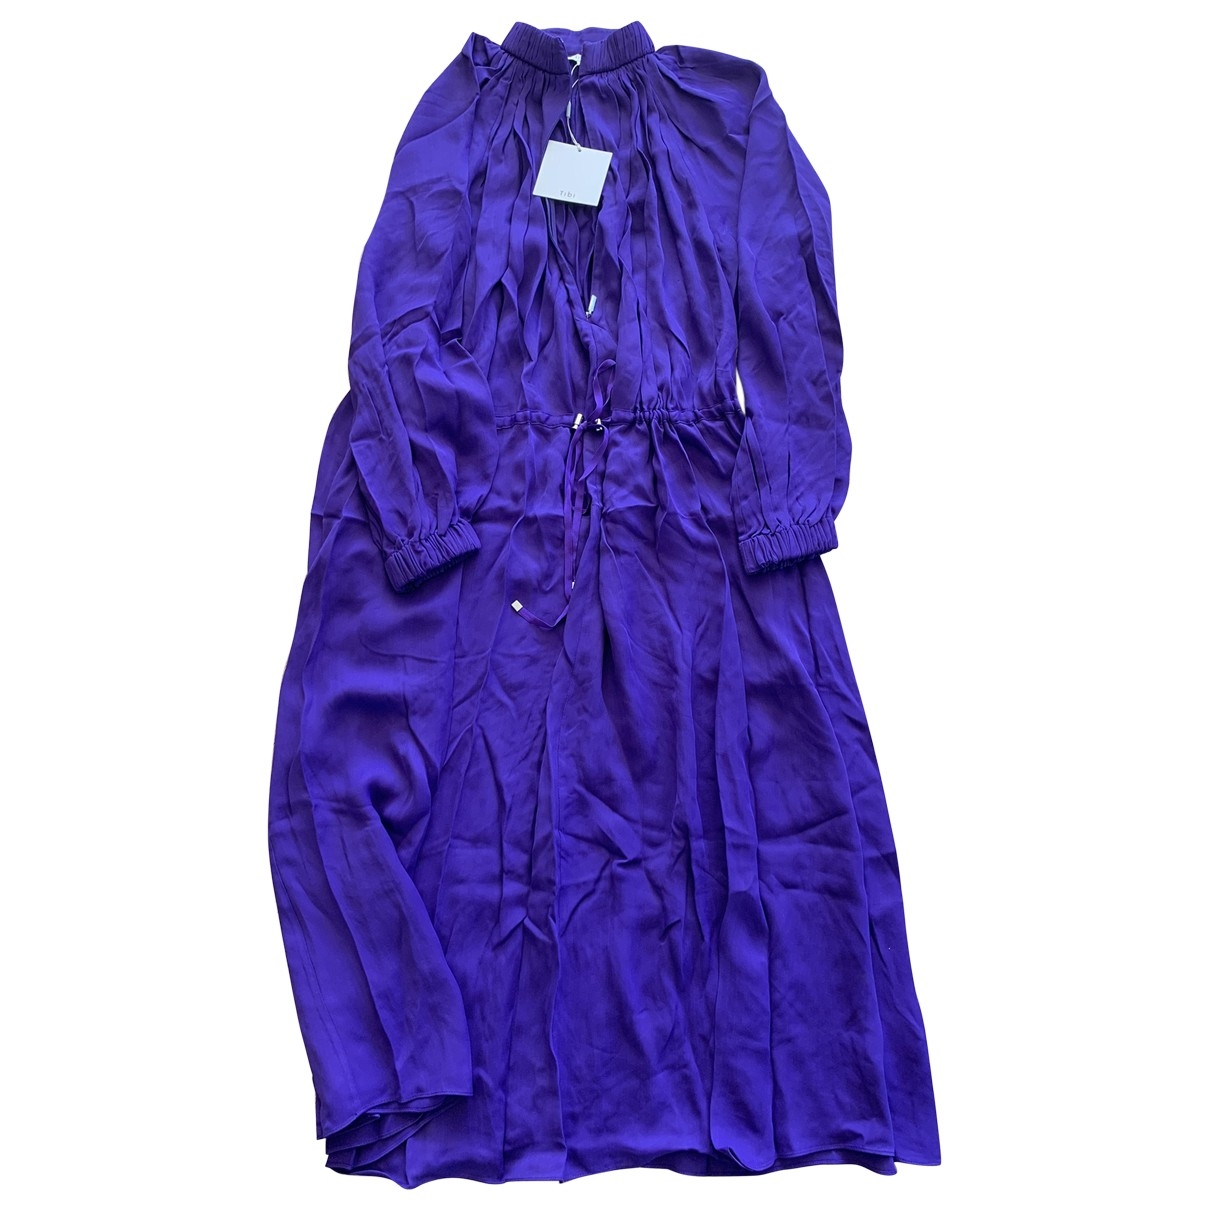 Tibi \N Purple Silk dress for Women M International